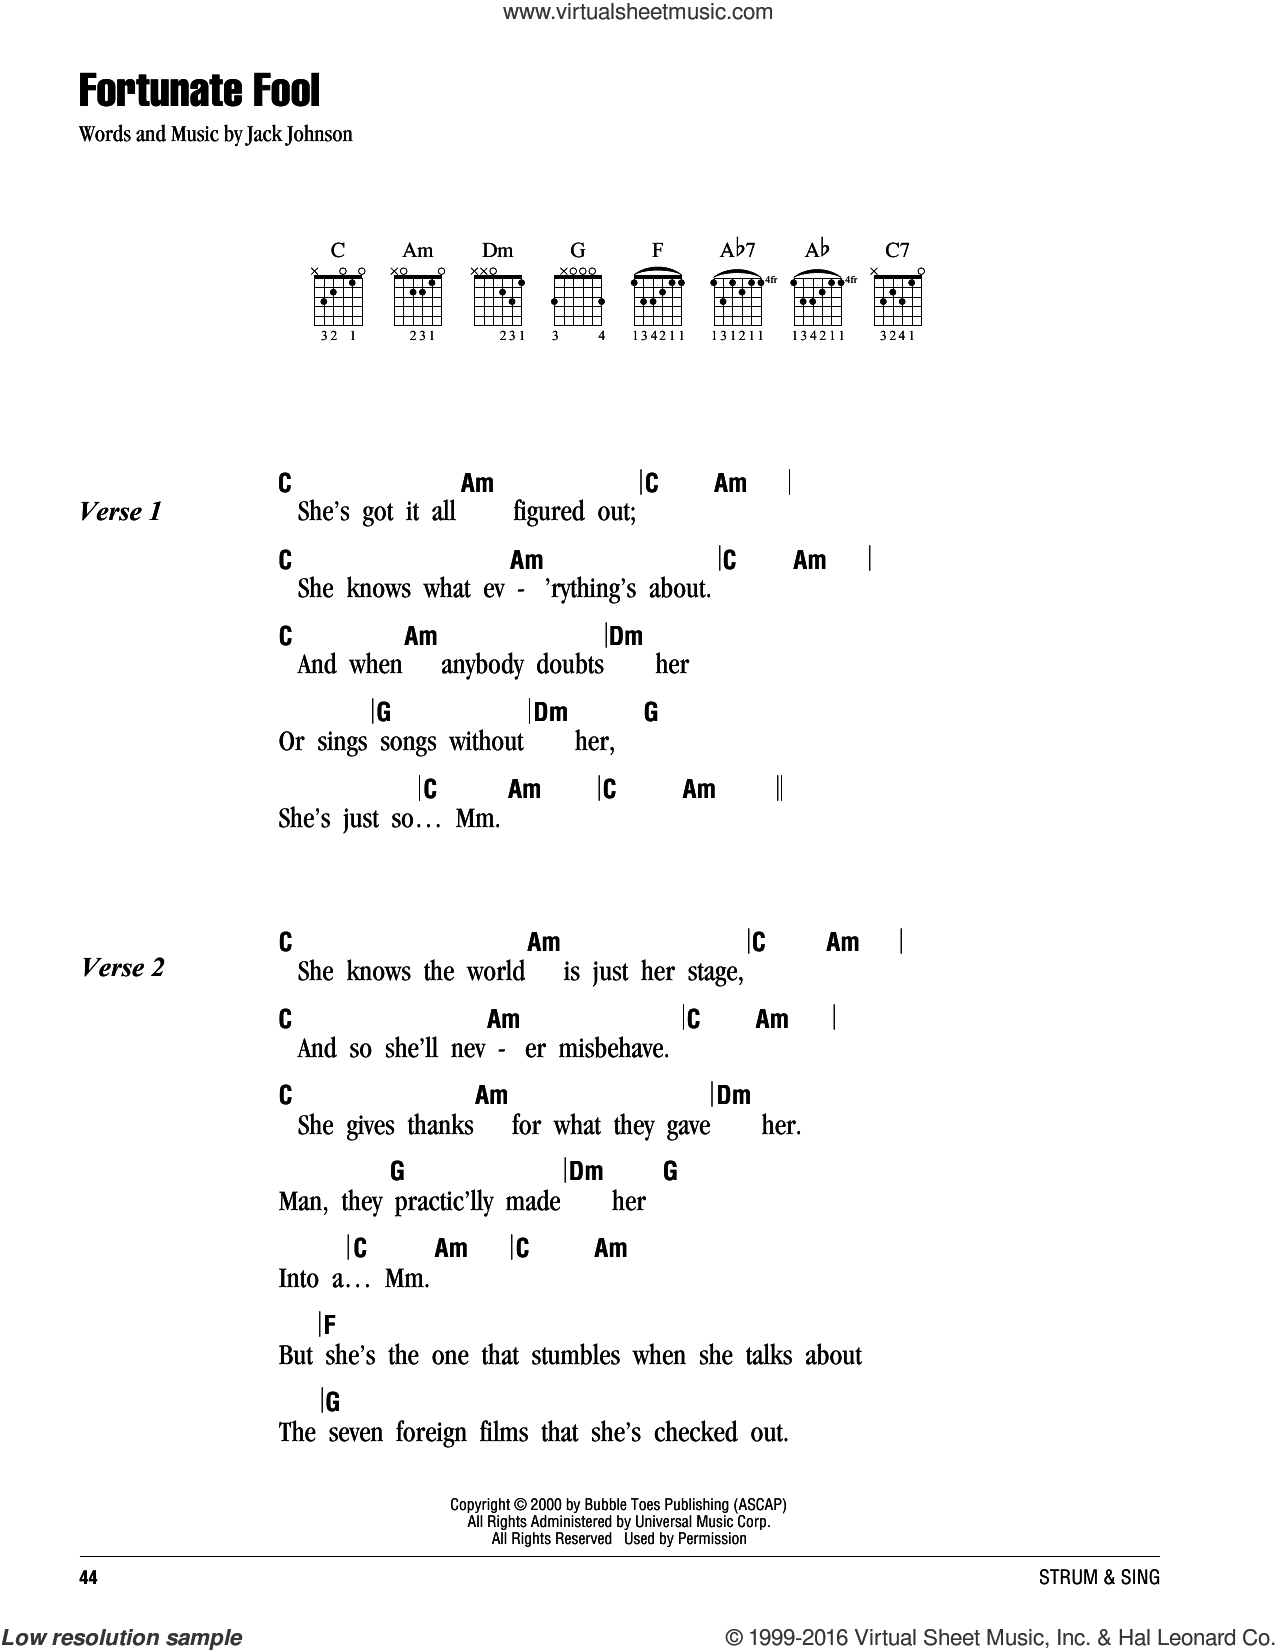 Fortunate Fool sheet music for guitar (chords) by Jack Johnson